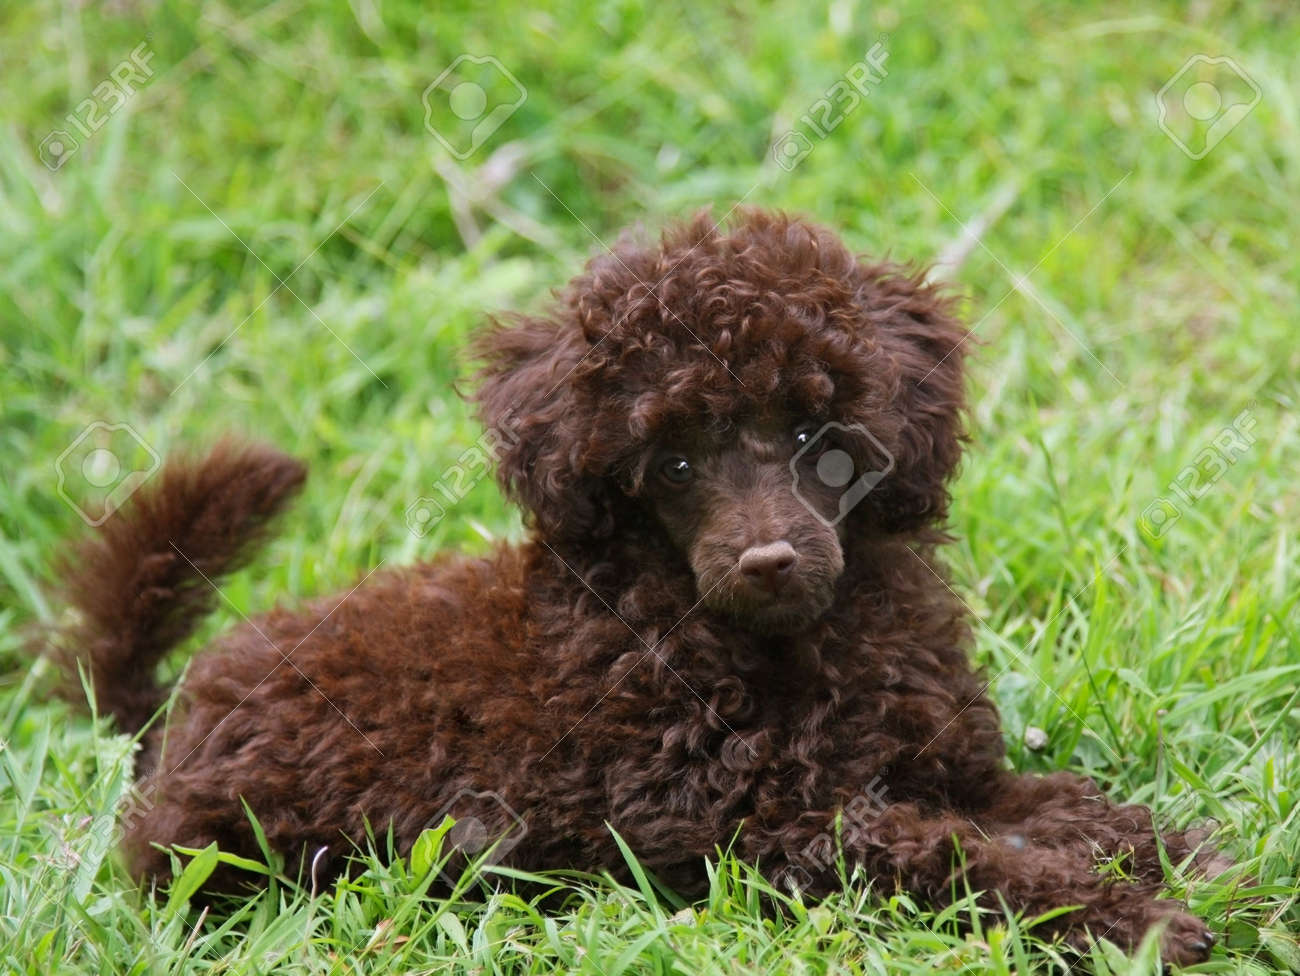 Cute Chocolate Brown Poodle Puppy Lying On Green Grass Stock Photo